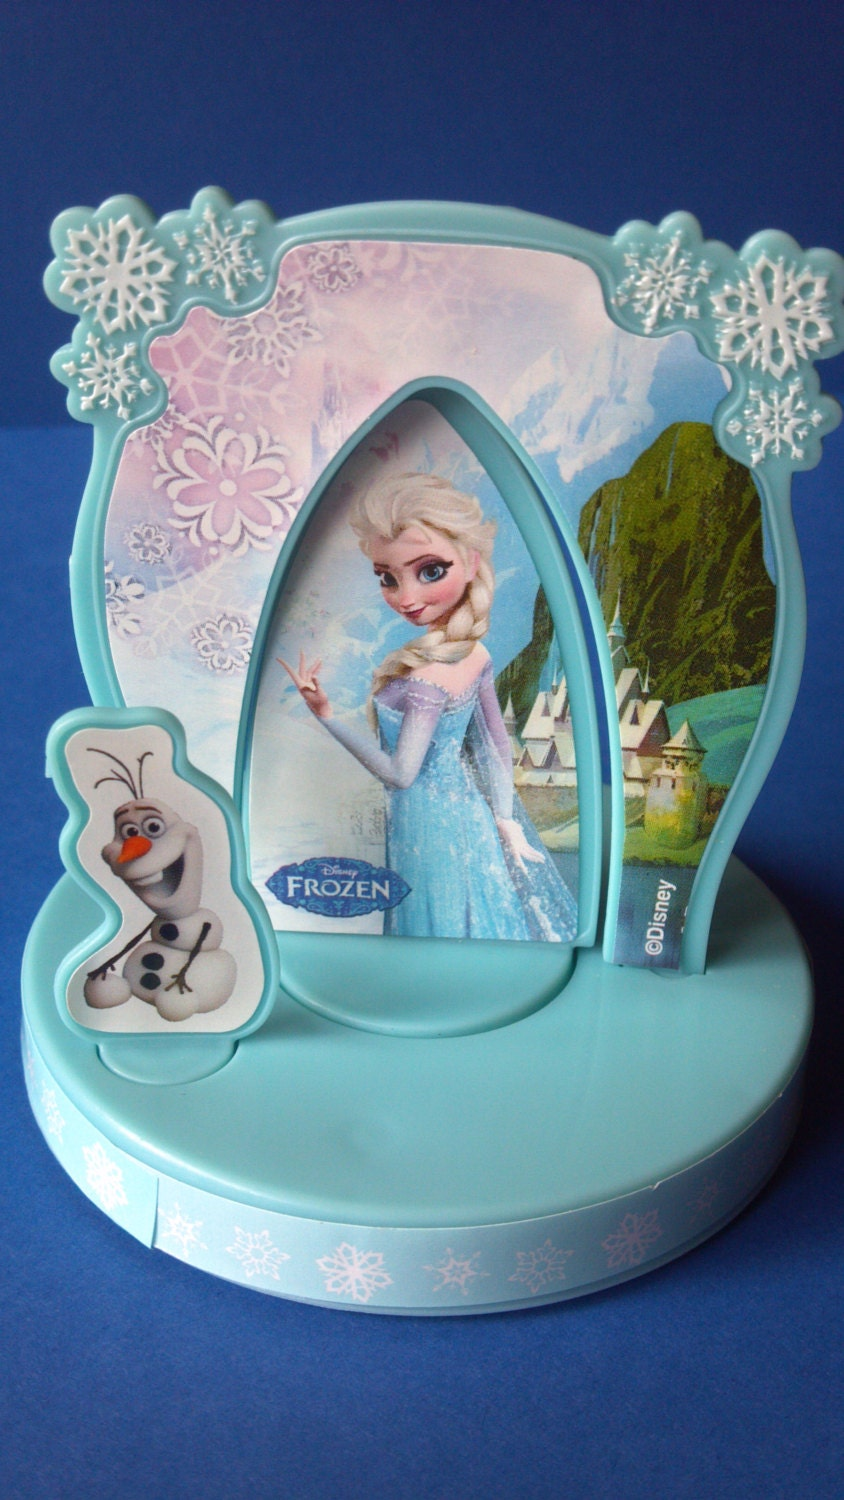 Etsy Frozen Cake Decorations : Frozen cake decorating topper perfect for by ...